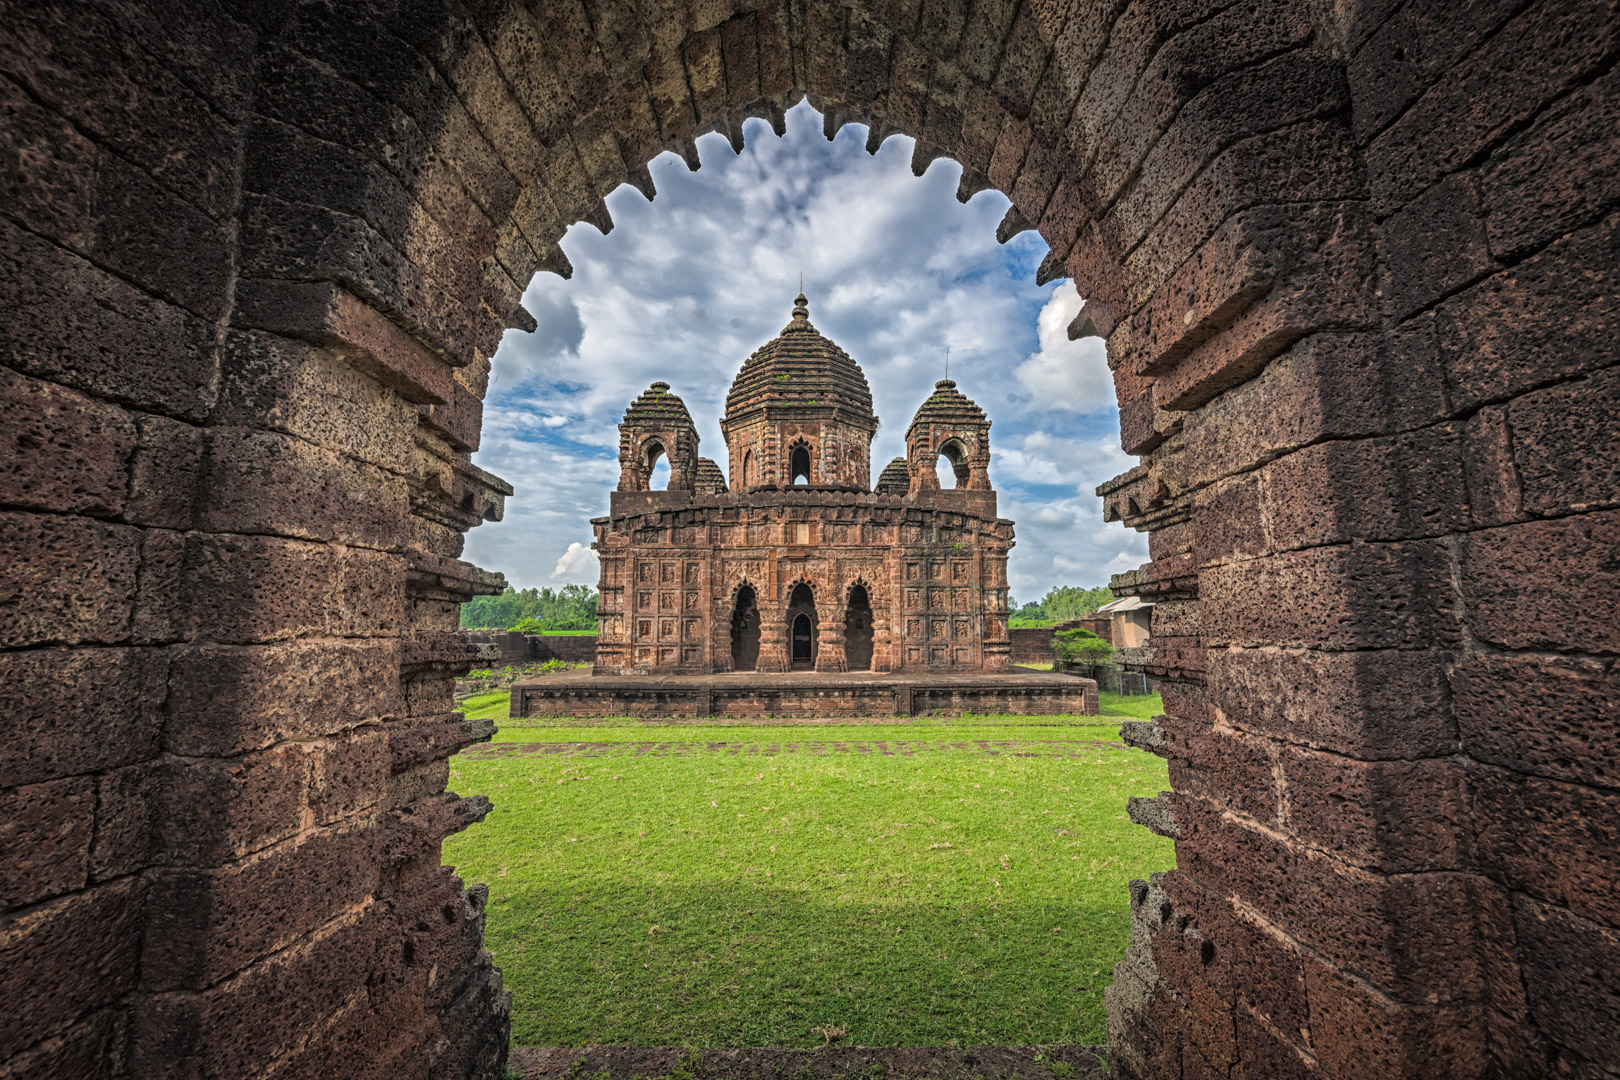 Krishna (Gokulchand) Temple at Joypur, Bankura, West Bengal India is a rare stone-built temple of Bengal where mostly terracotta temples are seen.